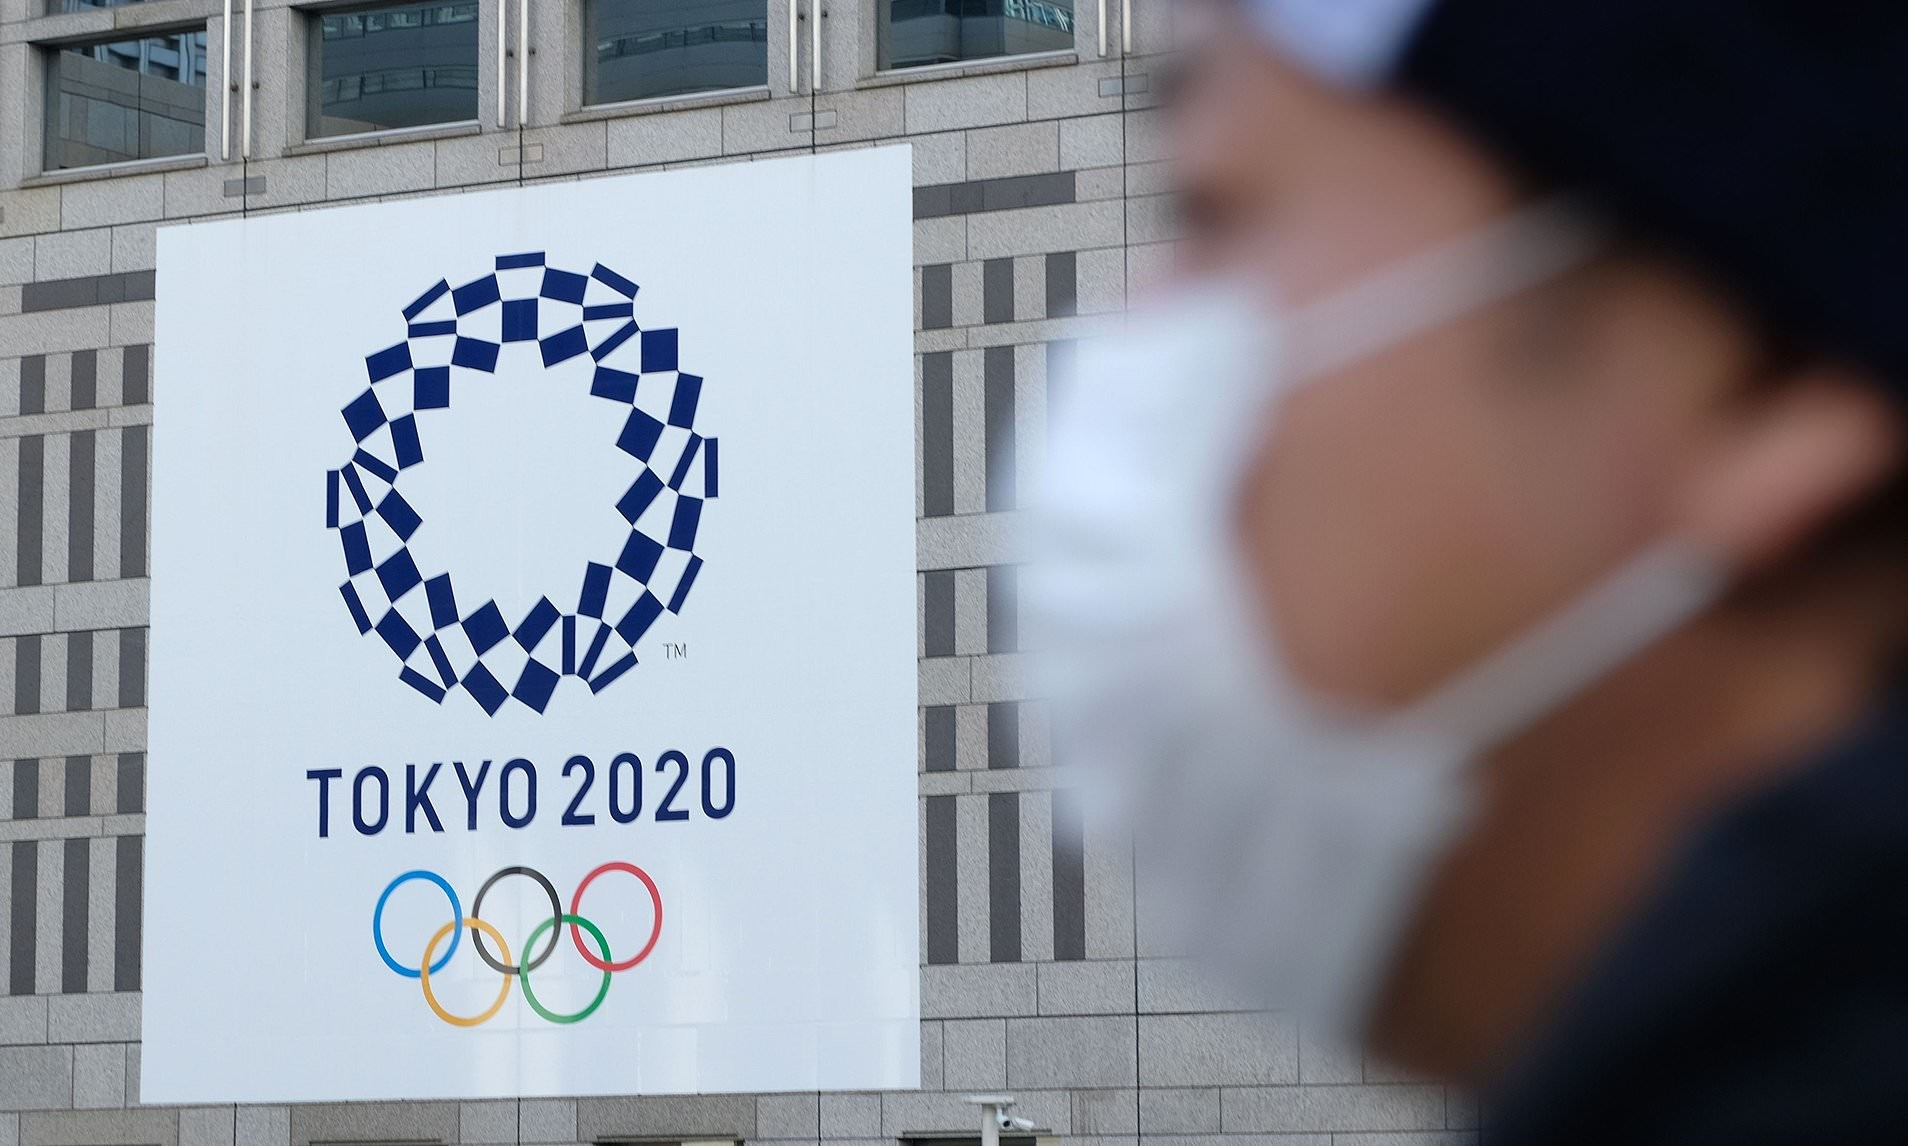 Athletes at the coronavirus-postponed Tokyo Olympics will face regular testing, restrictions on mingling and potential punishment for non-compliance with health rules